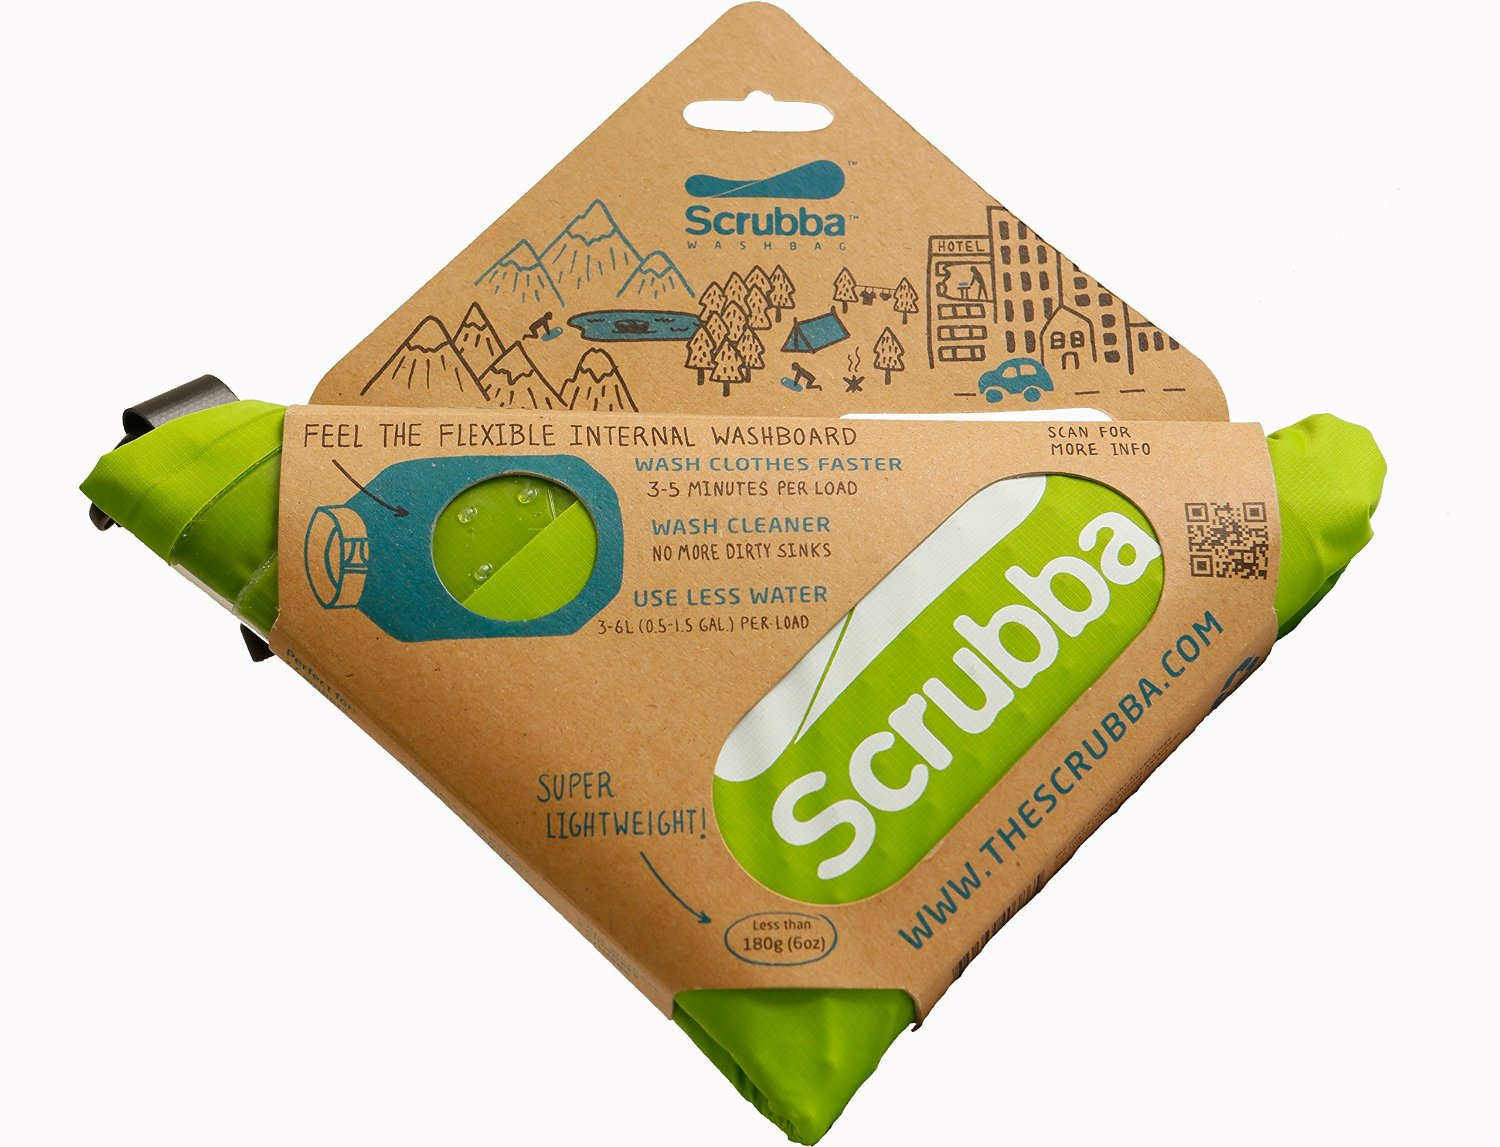 Scrubba Portable Laundry System Wash Bag - 1